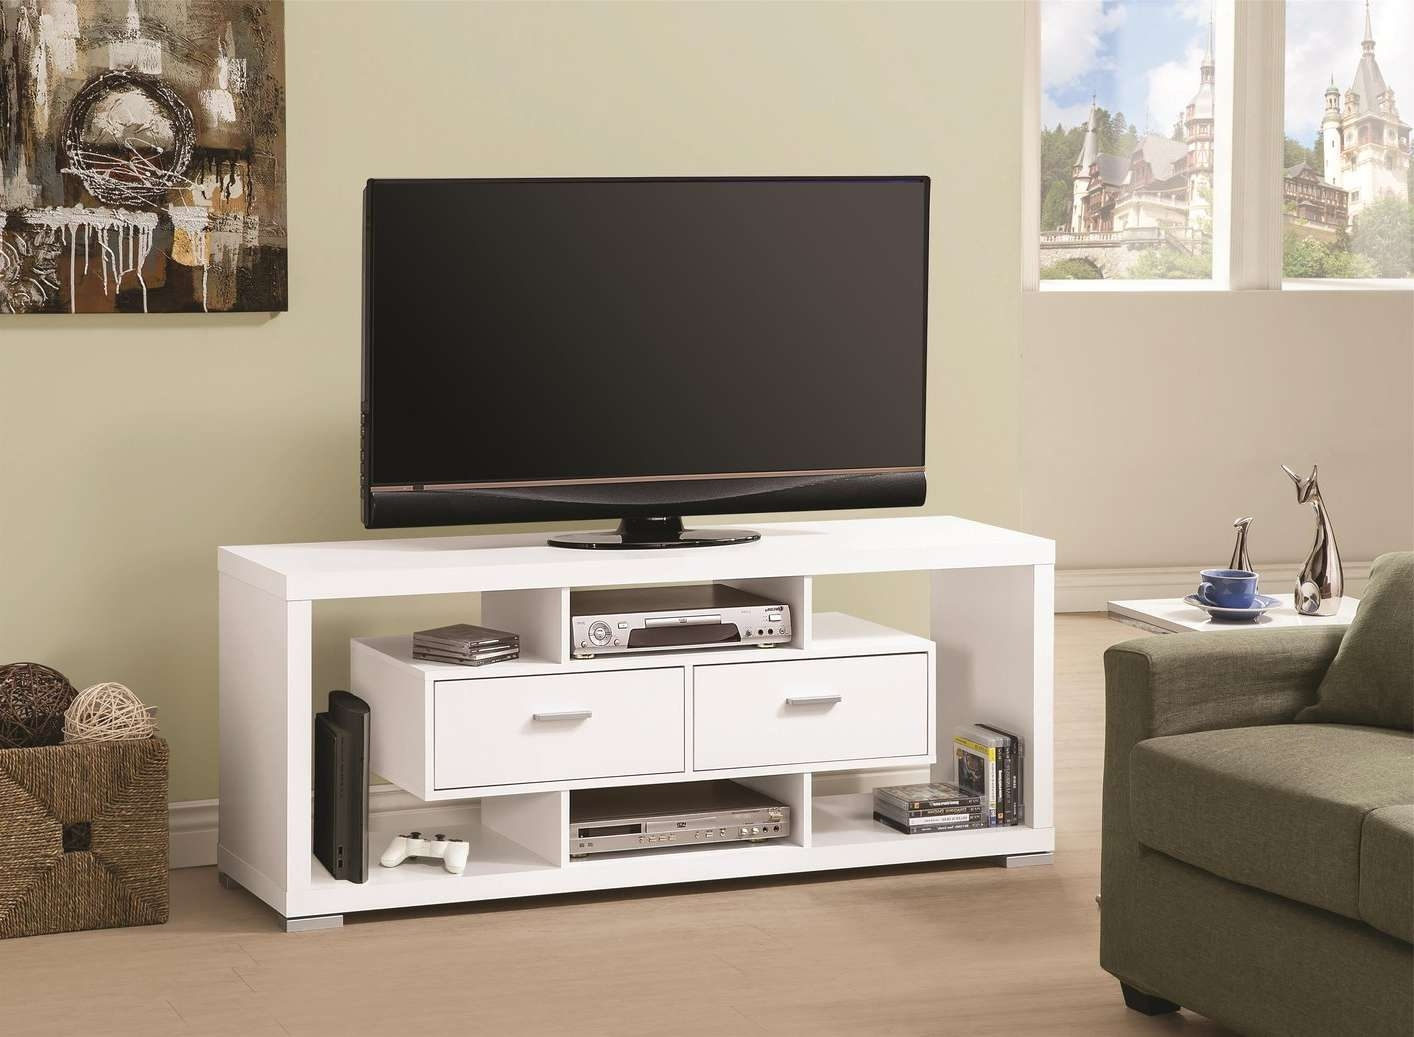 White Wood Tv Stand – Steal A Sofa Furniture Outlet Los Angeles Ca Within White Wood Tv Stands (View 13 of 15)